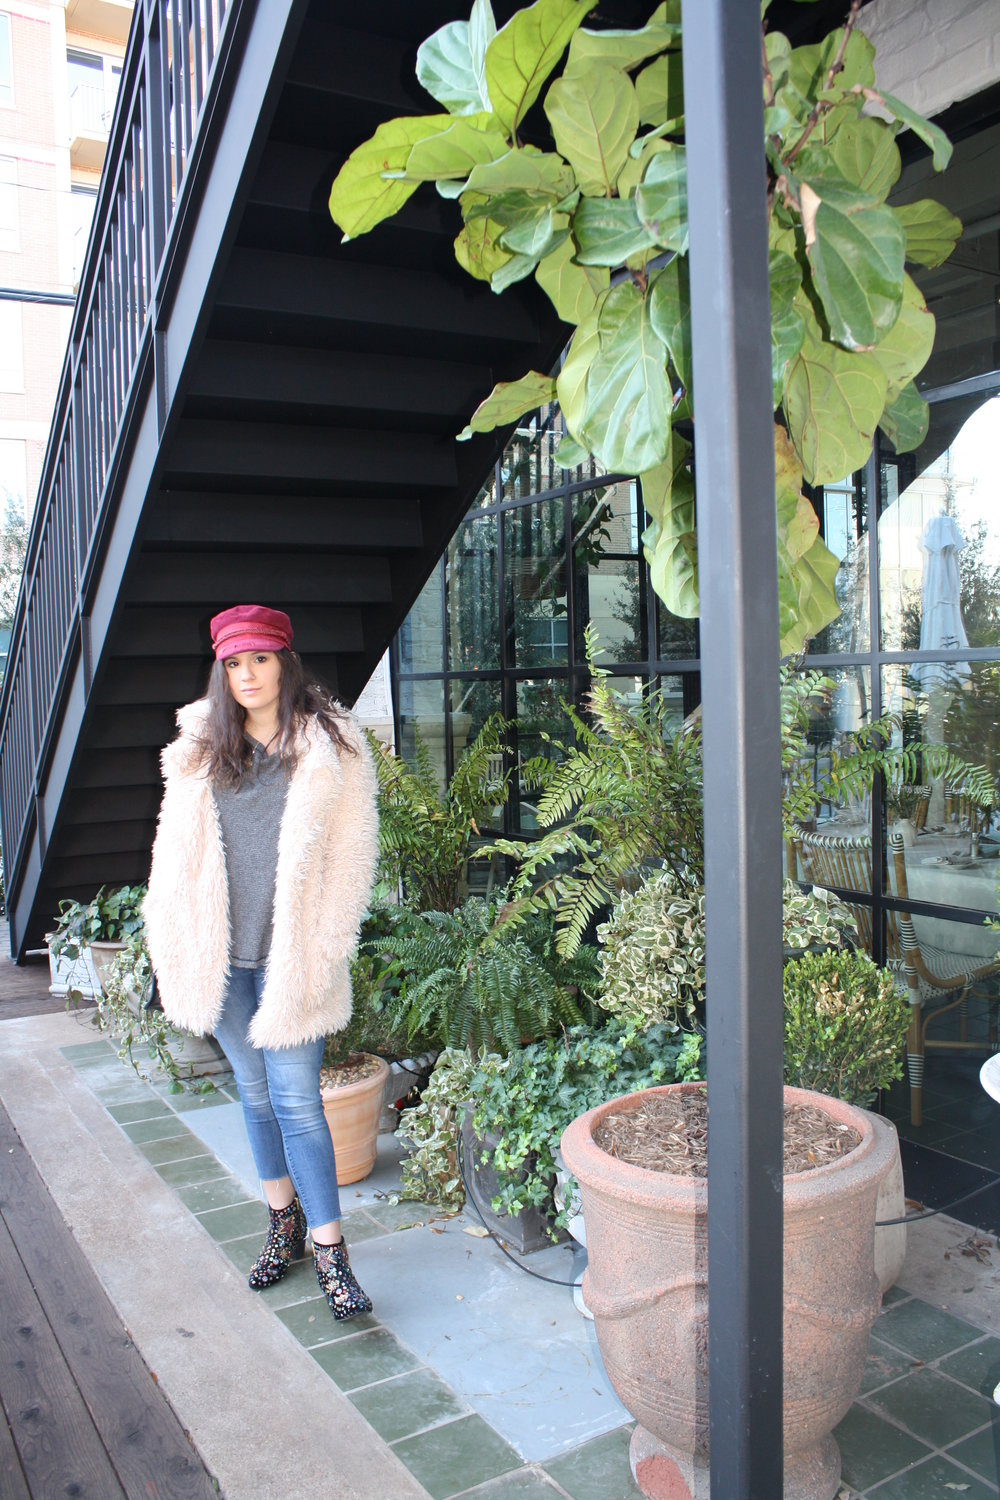 Hat: Brtixton from UO; Shirt: Free People; Jacket: Sage the Label; Jeans: 7 for All Mankind; Shoes: Free People